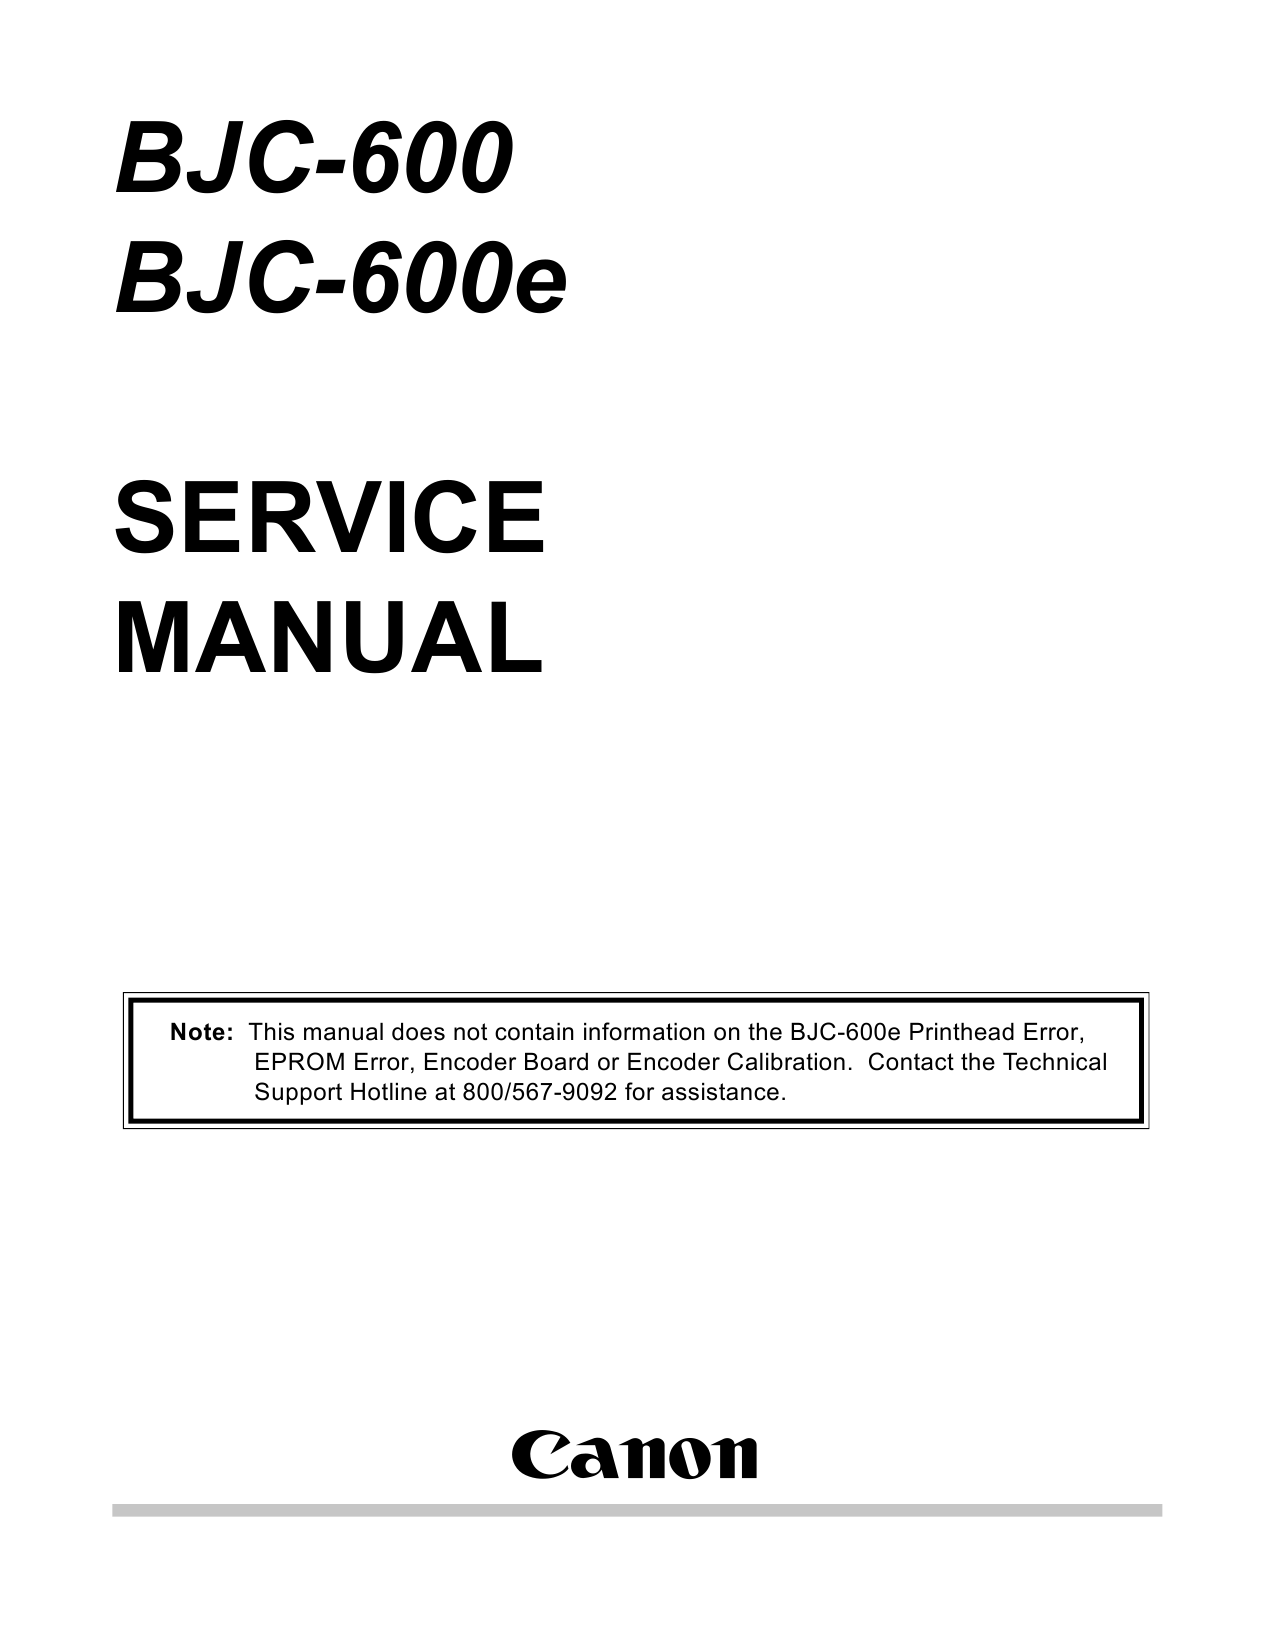 Canon BubbleJet BJC-600 600e Service Manual-1